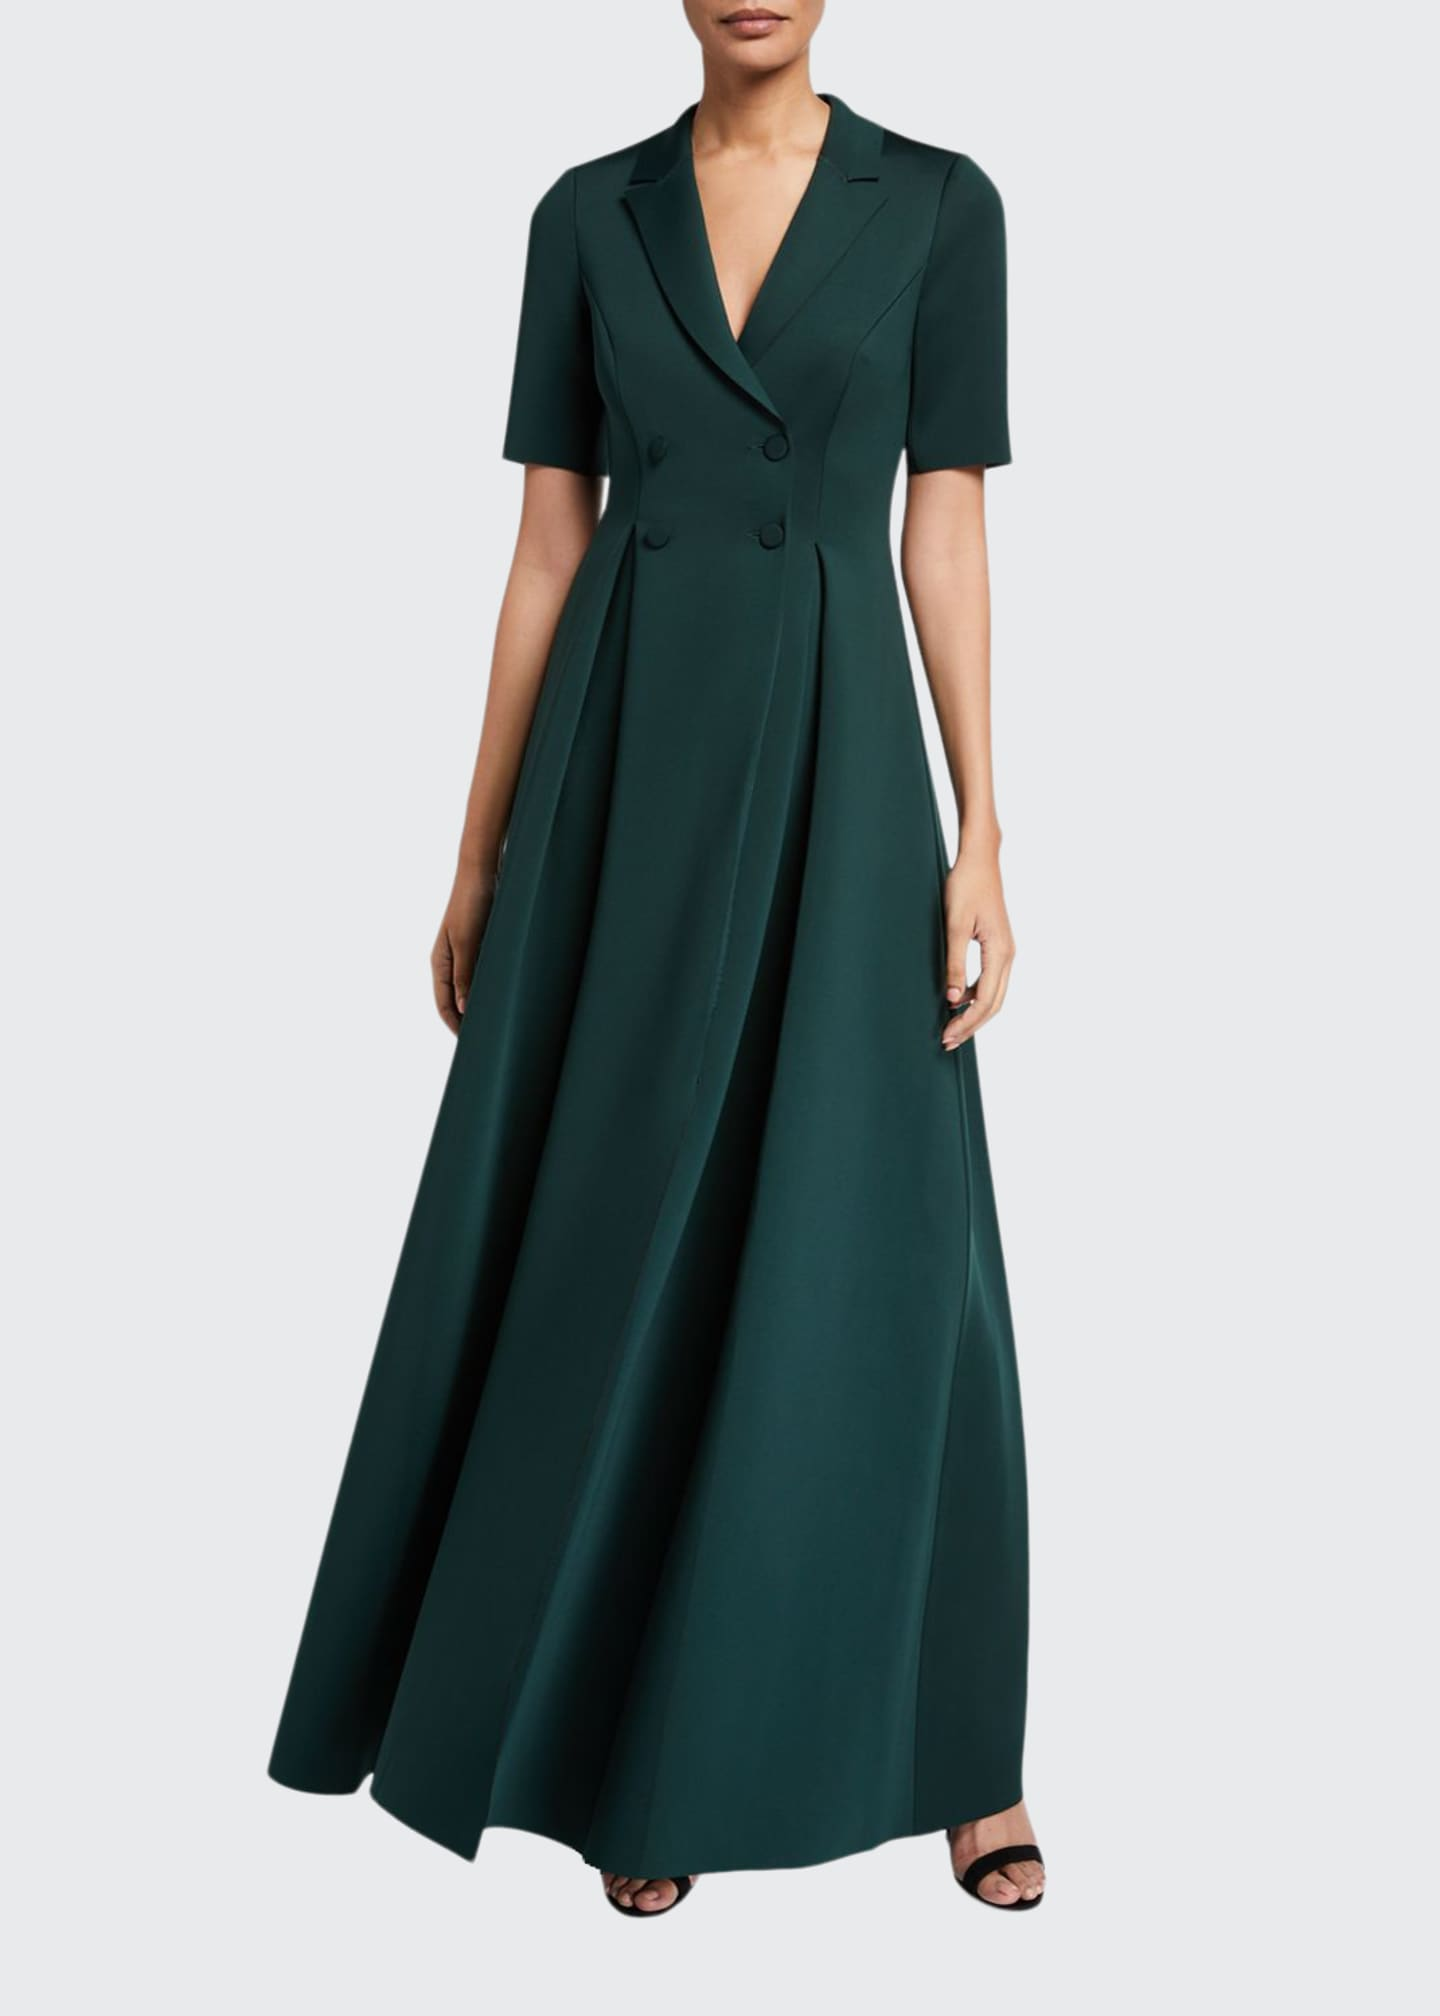 Badgley Mischka Collection Elbow-Sleeve Long Scuba Coat Dress